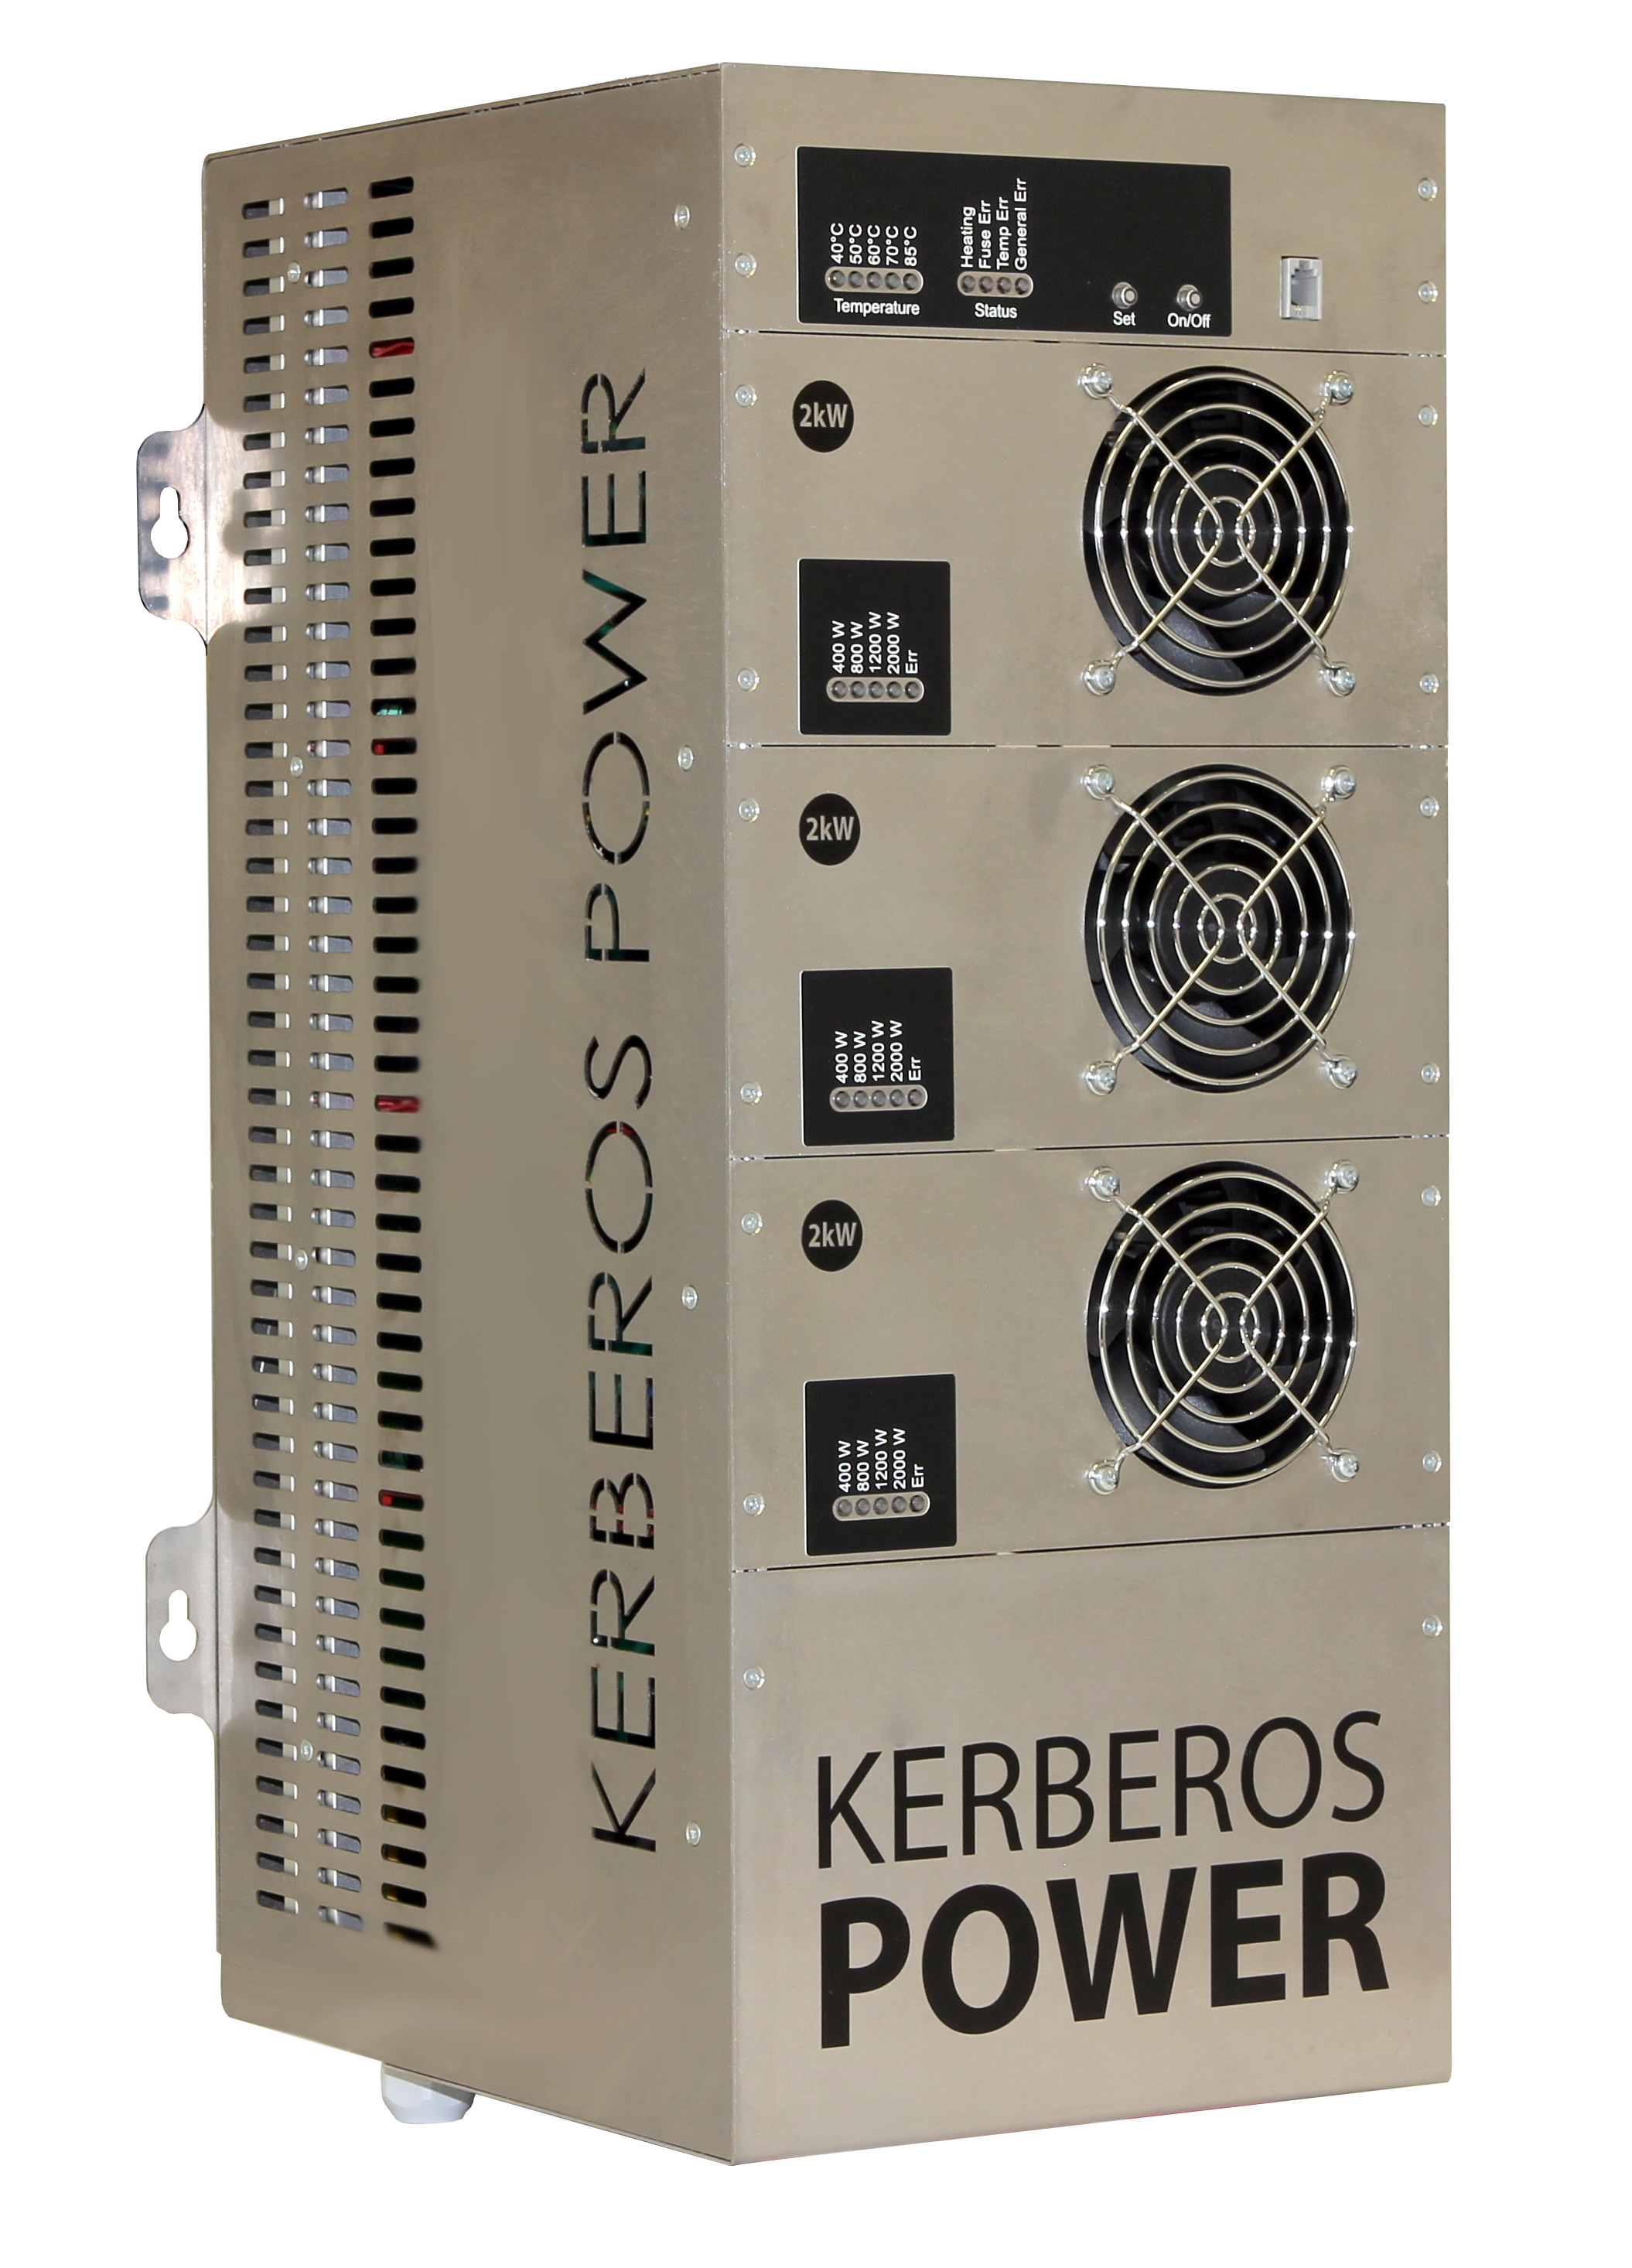 Kerberos Power 6000.B 2kW